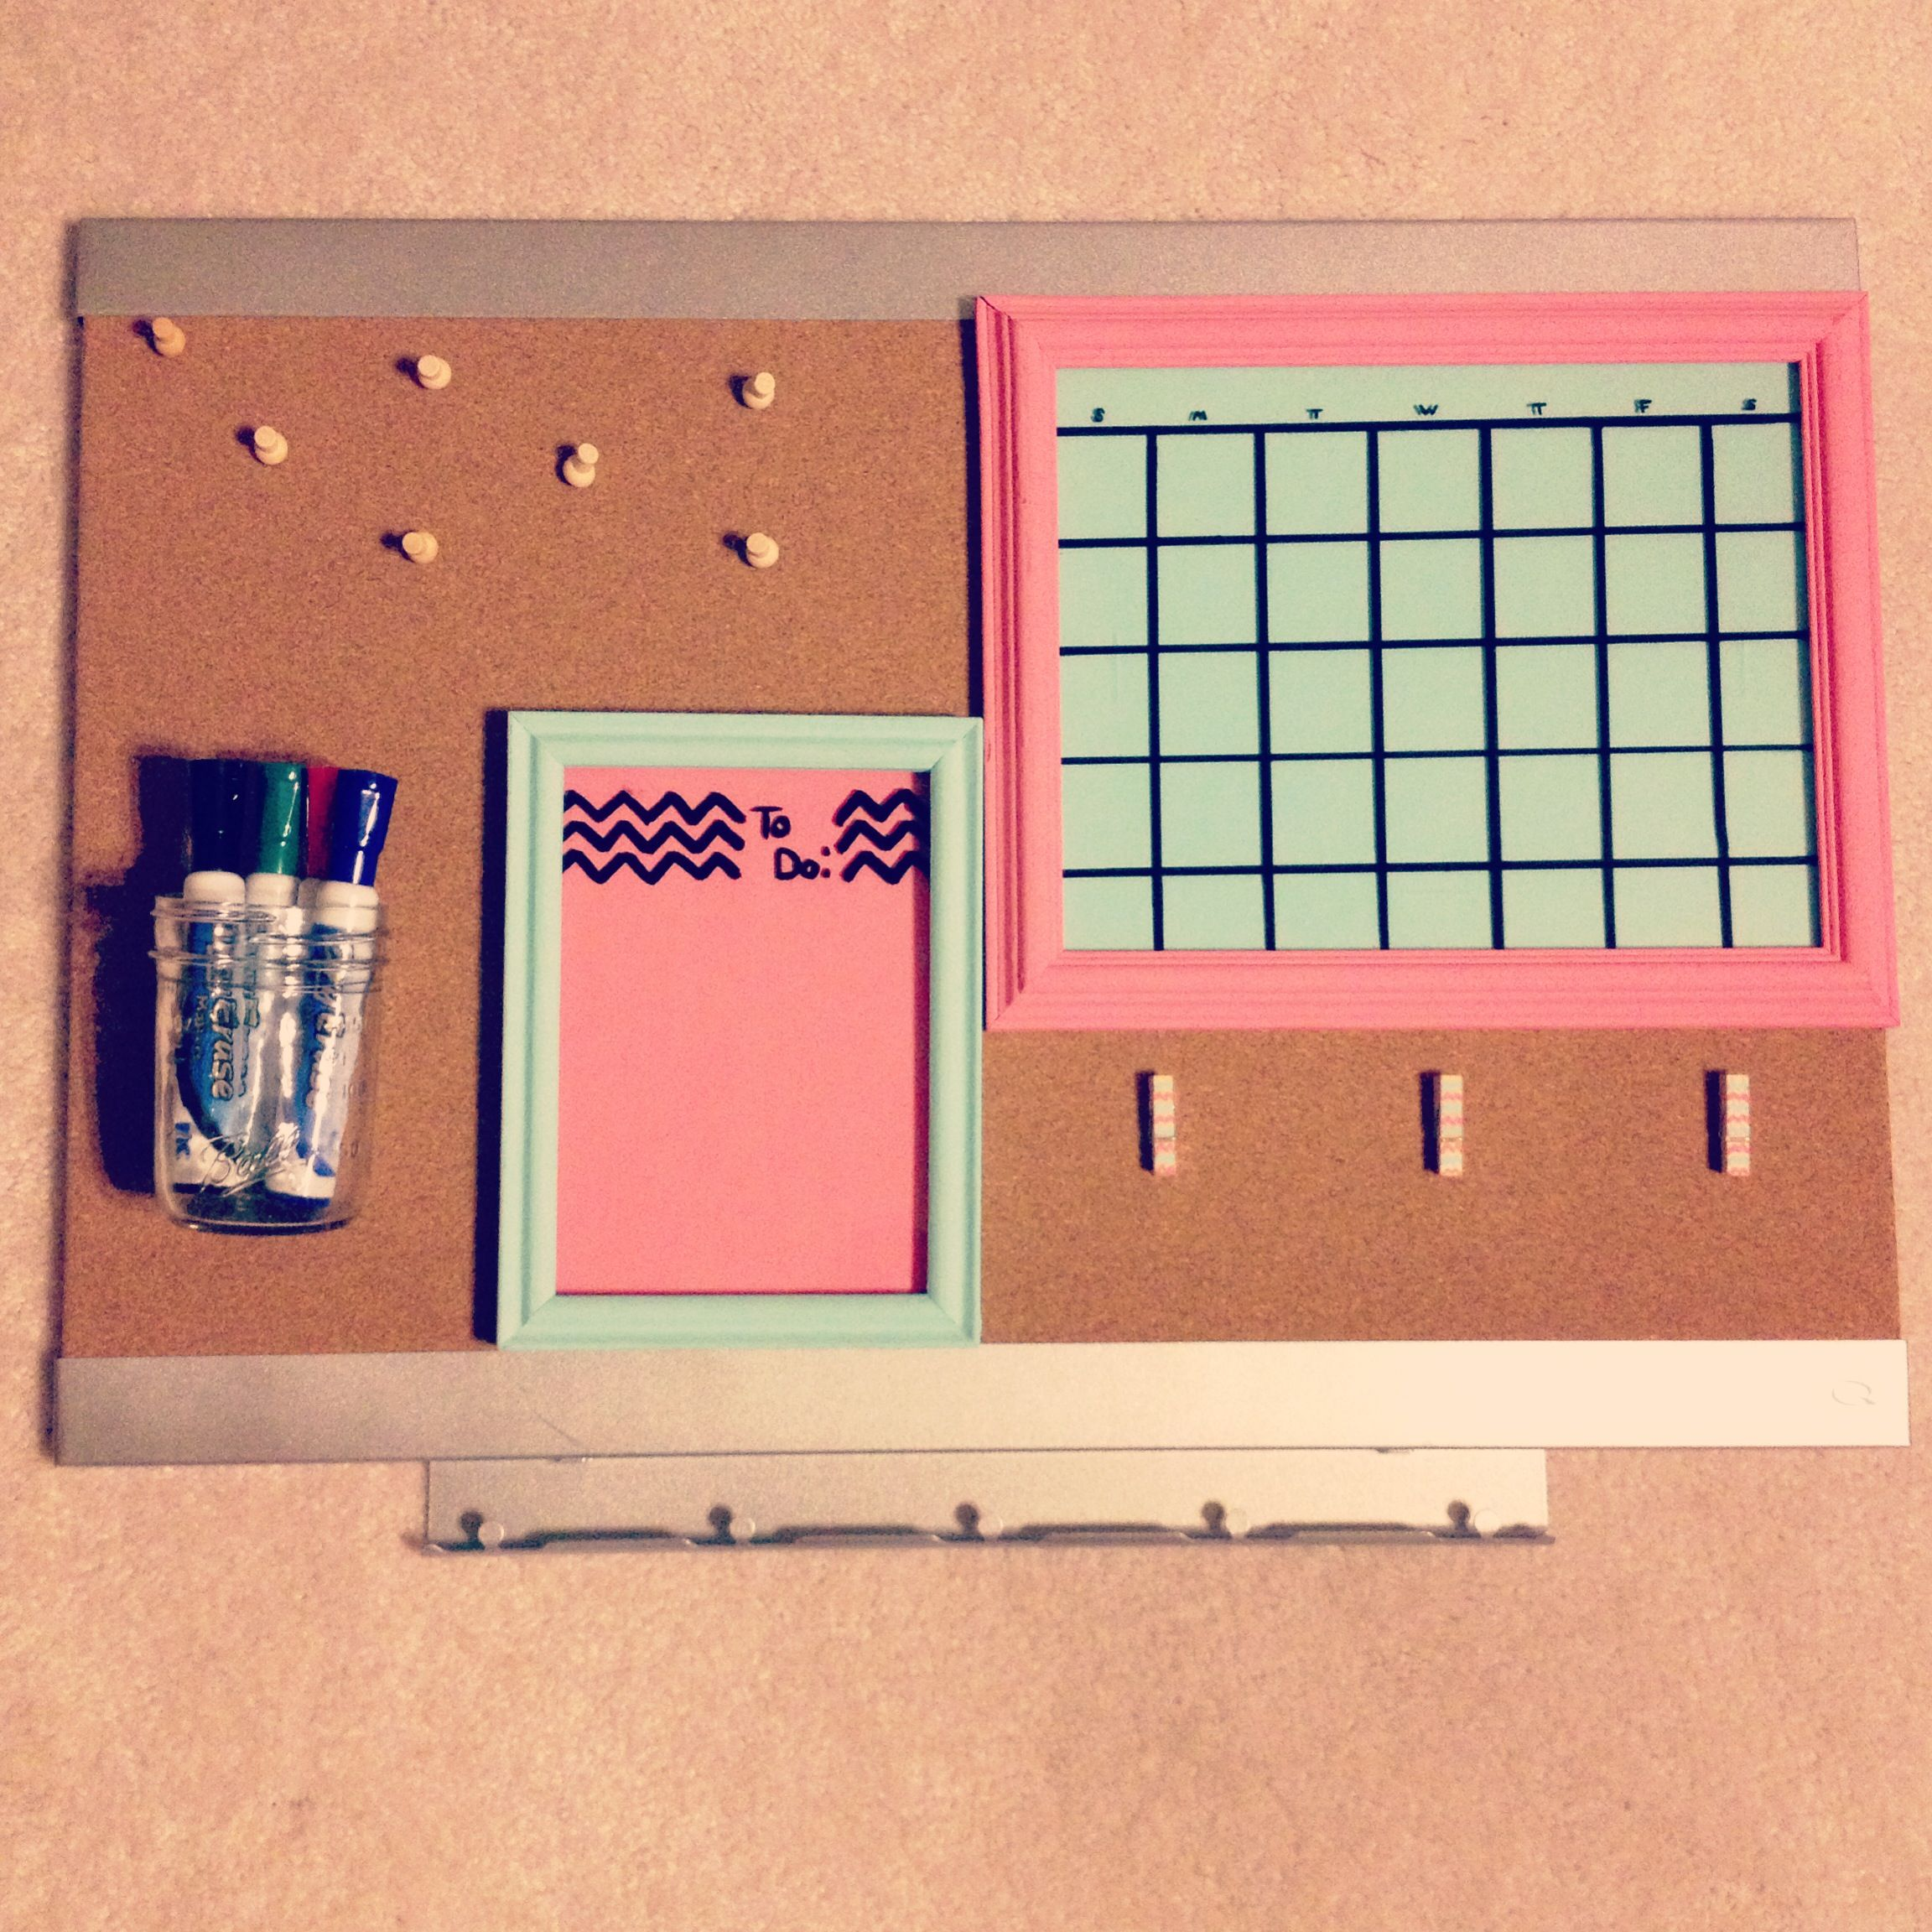 DIY College Dorm Room Bulletin Board Using Old Picture Frames.  #Humbercollege #college #